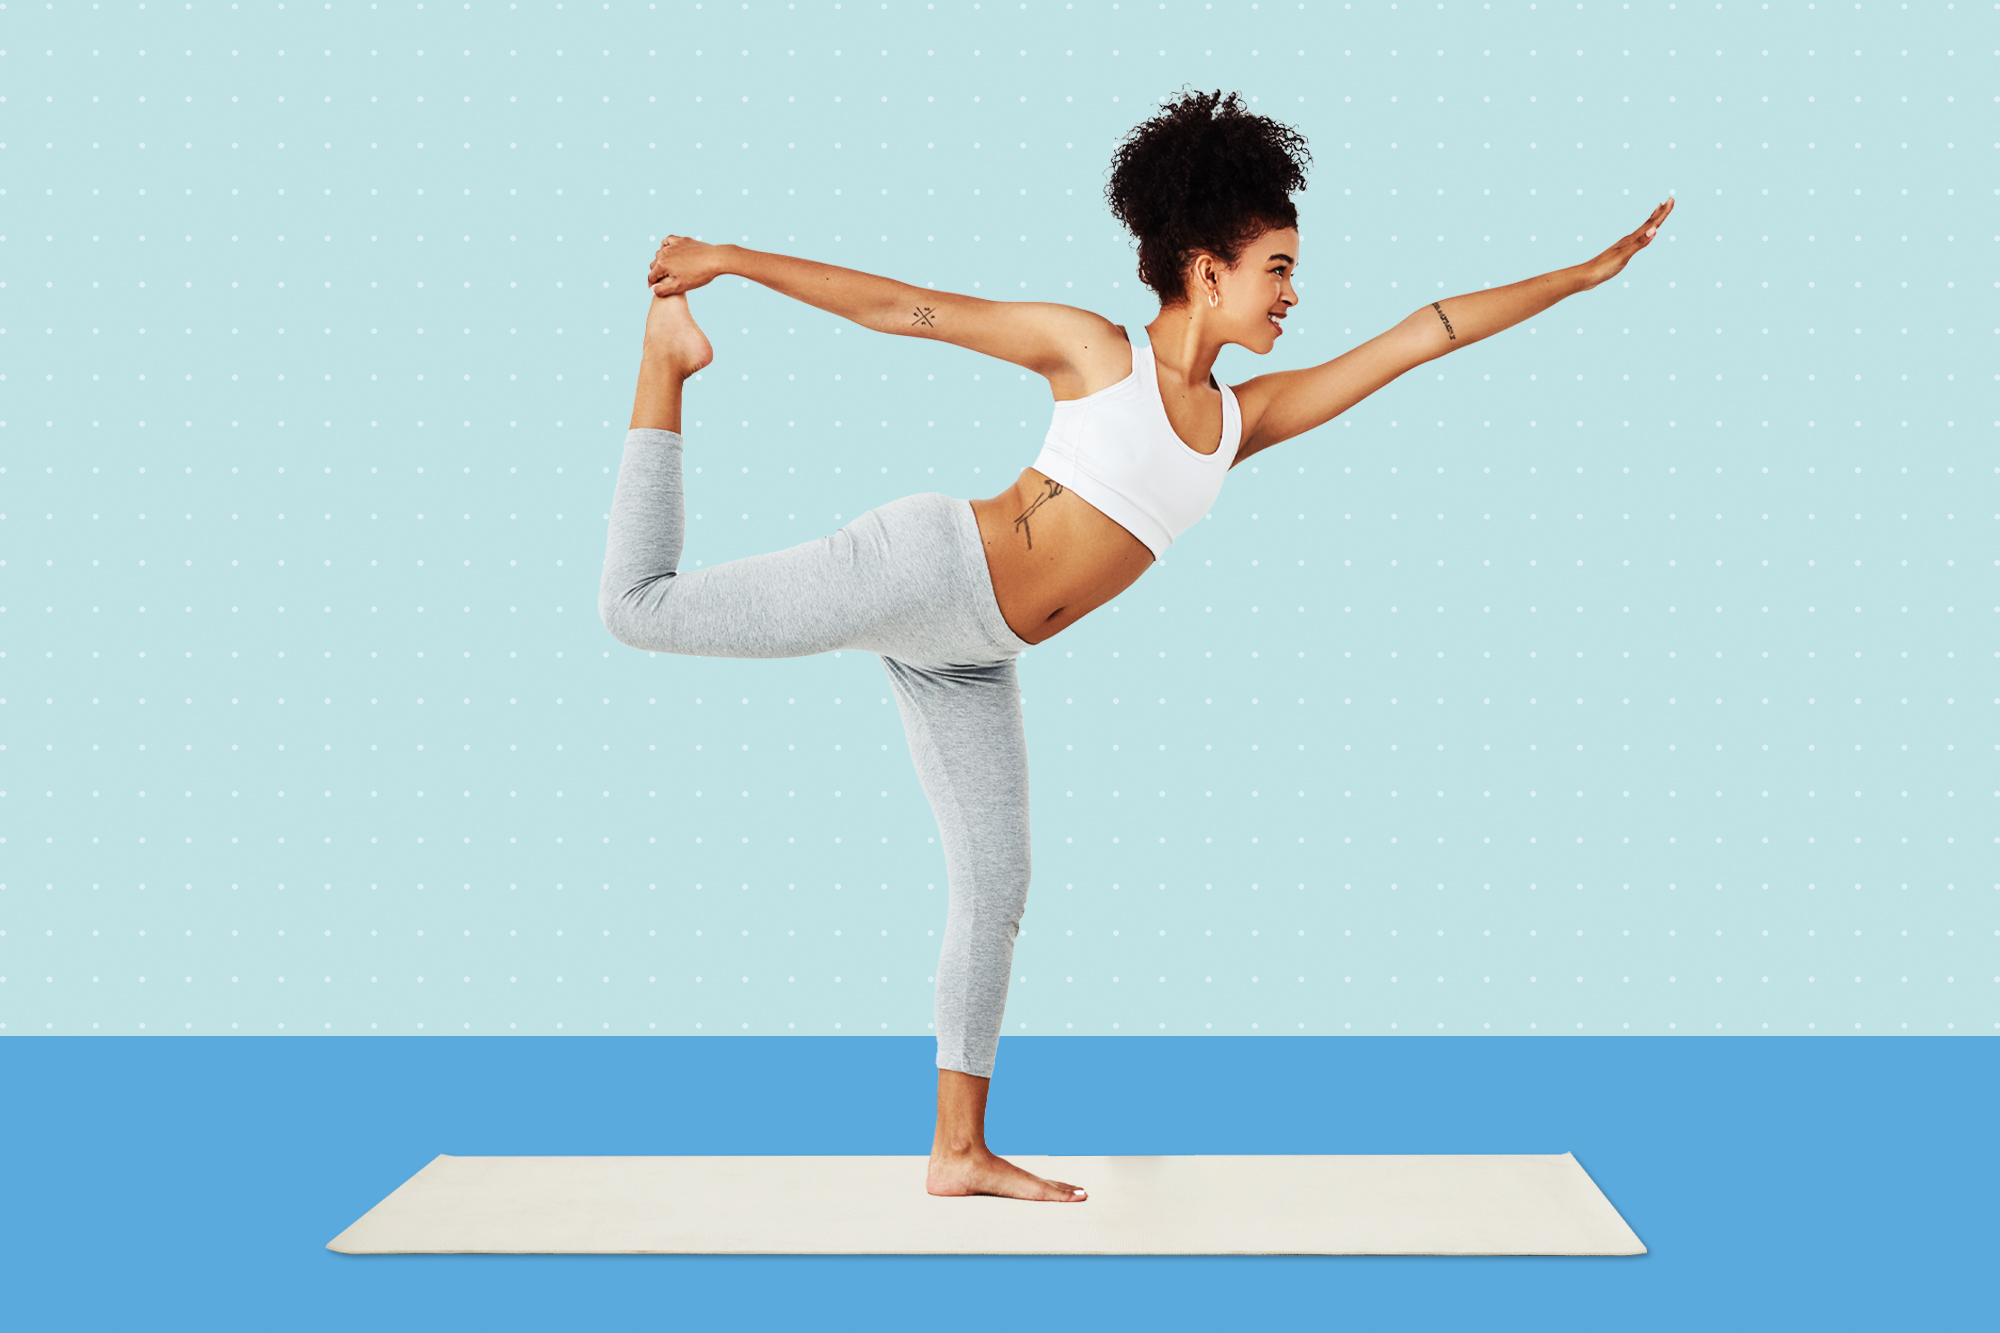 A woman balancing on one foot while doing yoga on a designed background